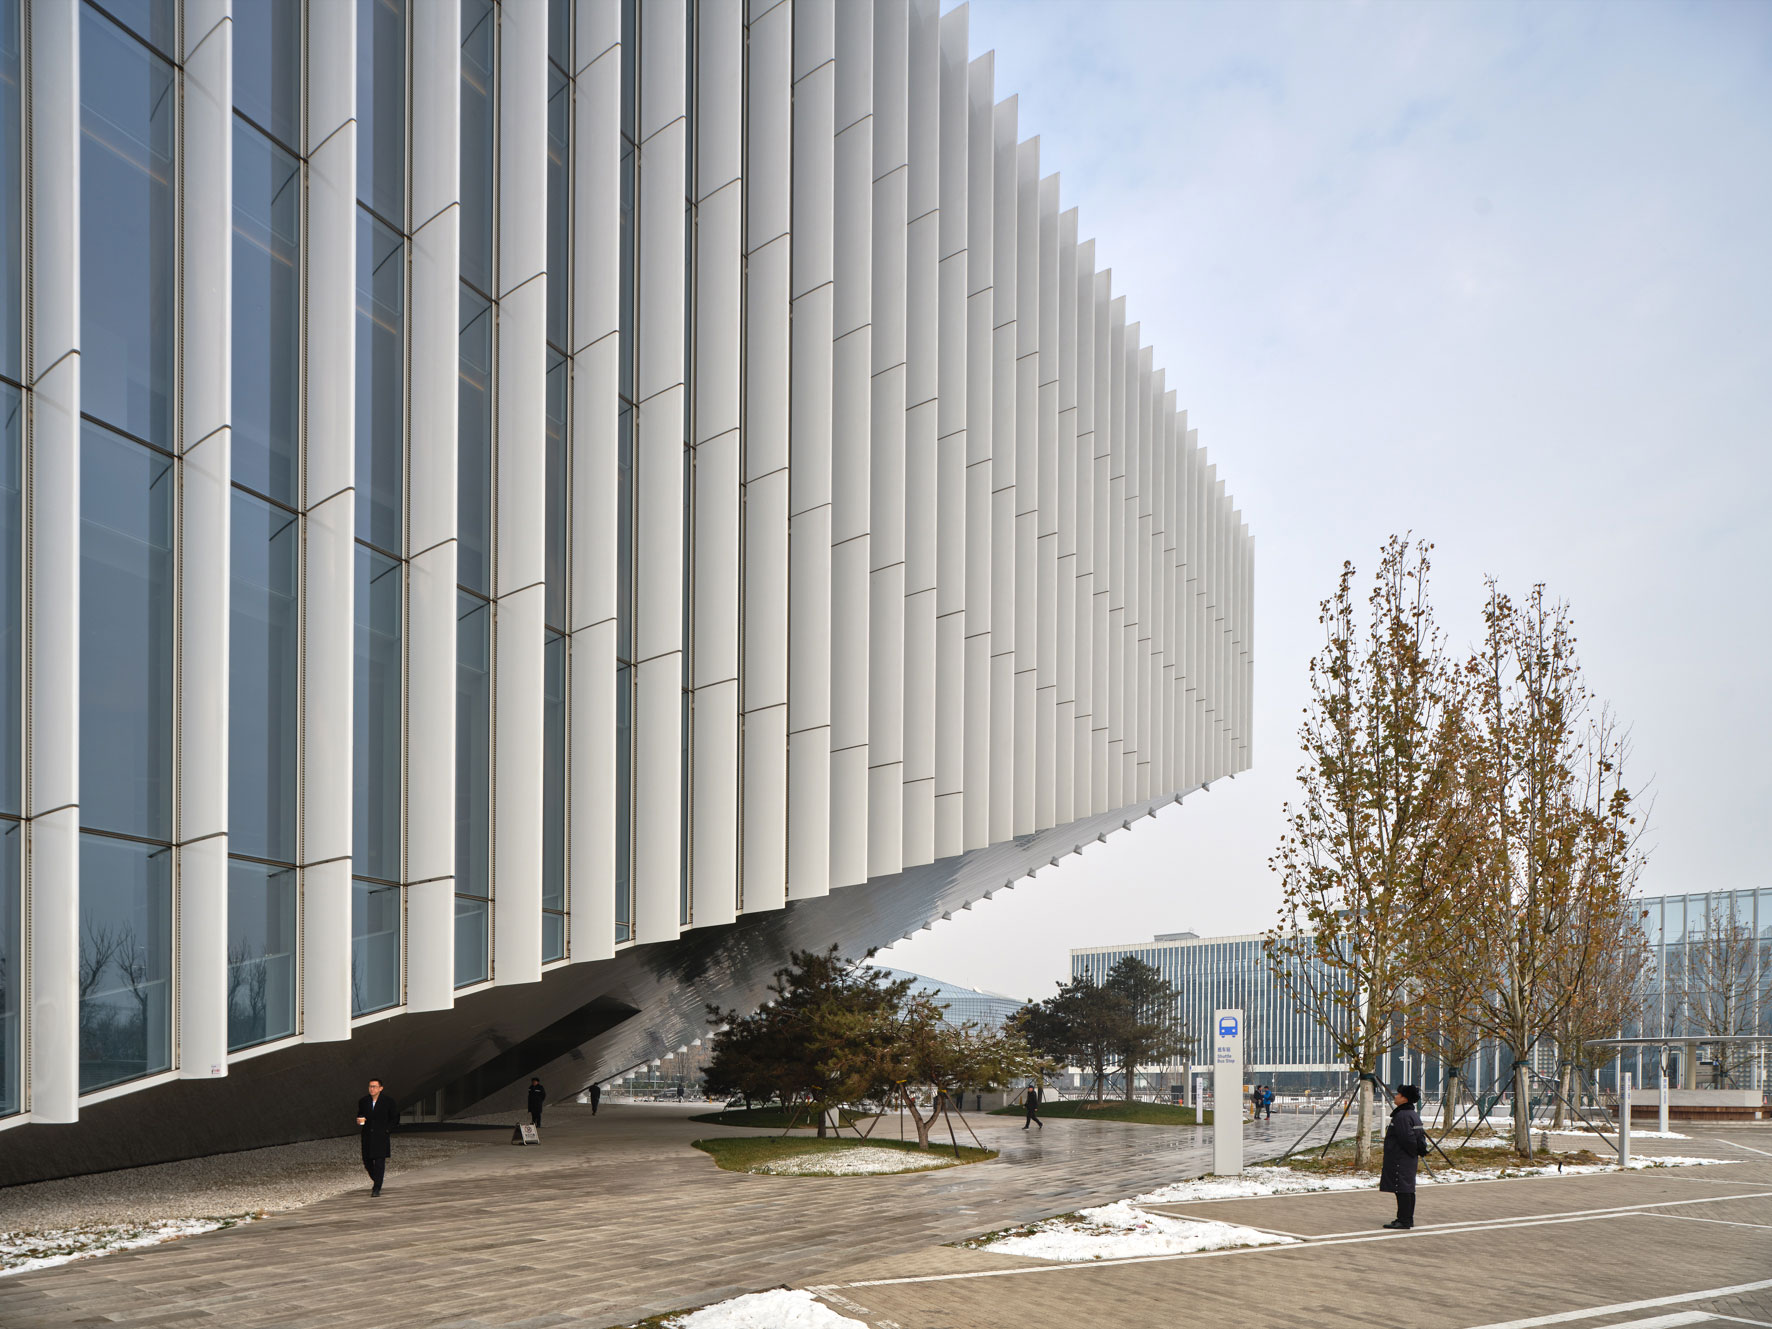 Tencent Beijing, China. OMA. Owen Raggett, Architectural photographer Singapore